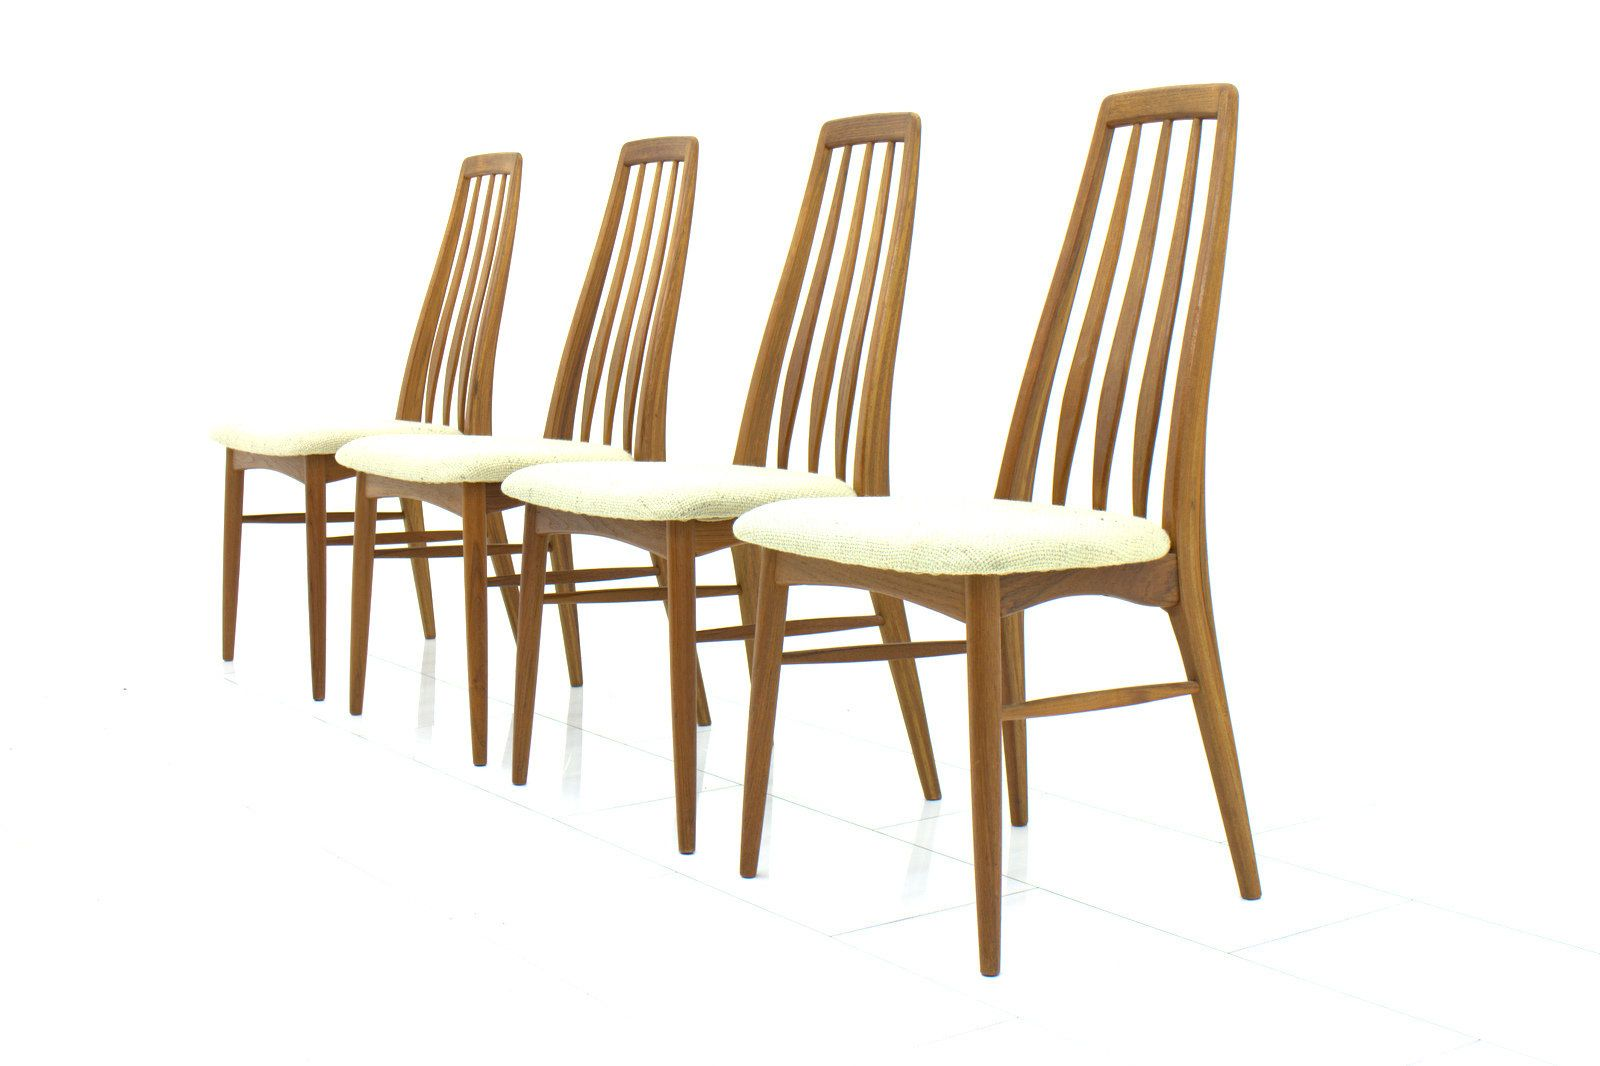 Eva Teak Dining Chairs By Niels Koefoed For Hornslet 1960s Set Of 4 For Sal